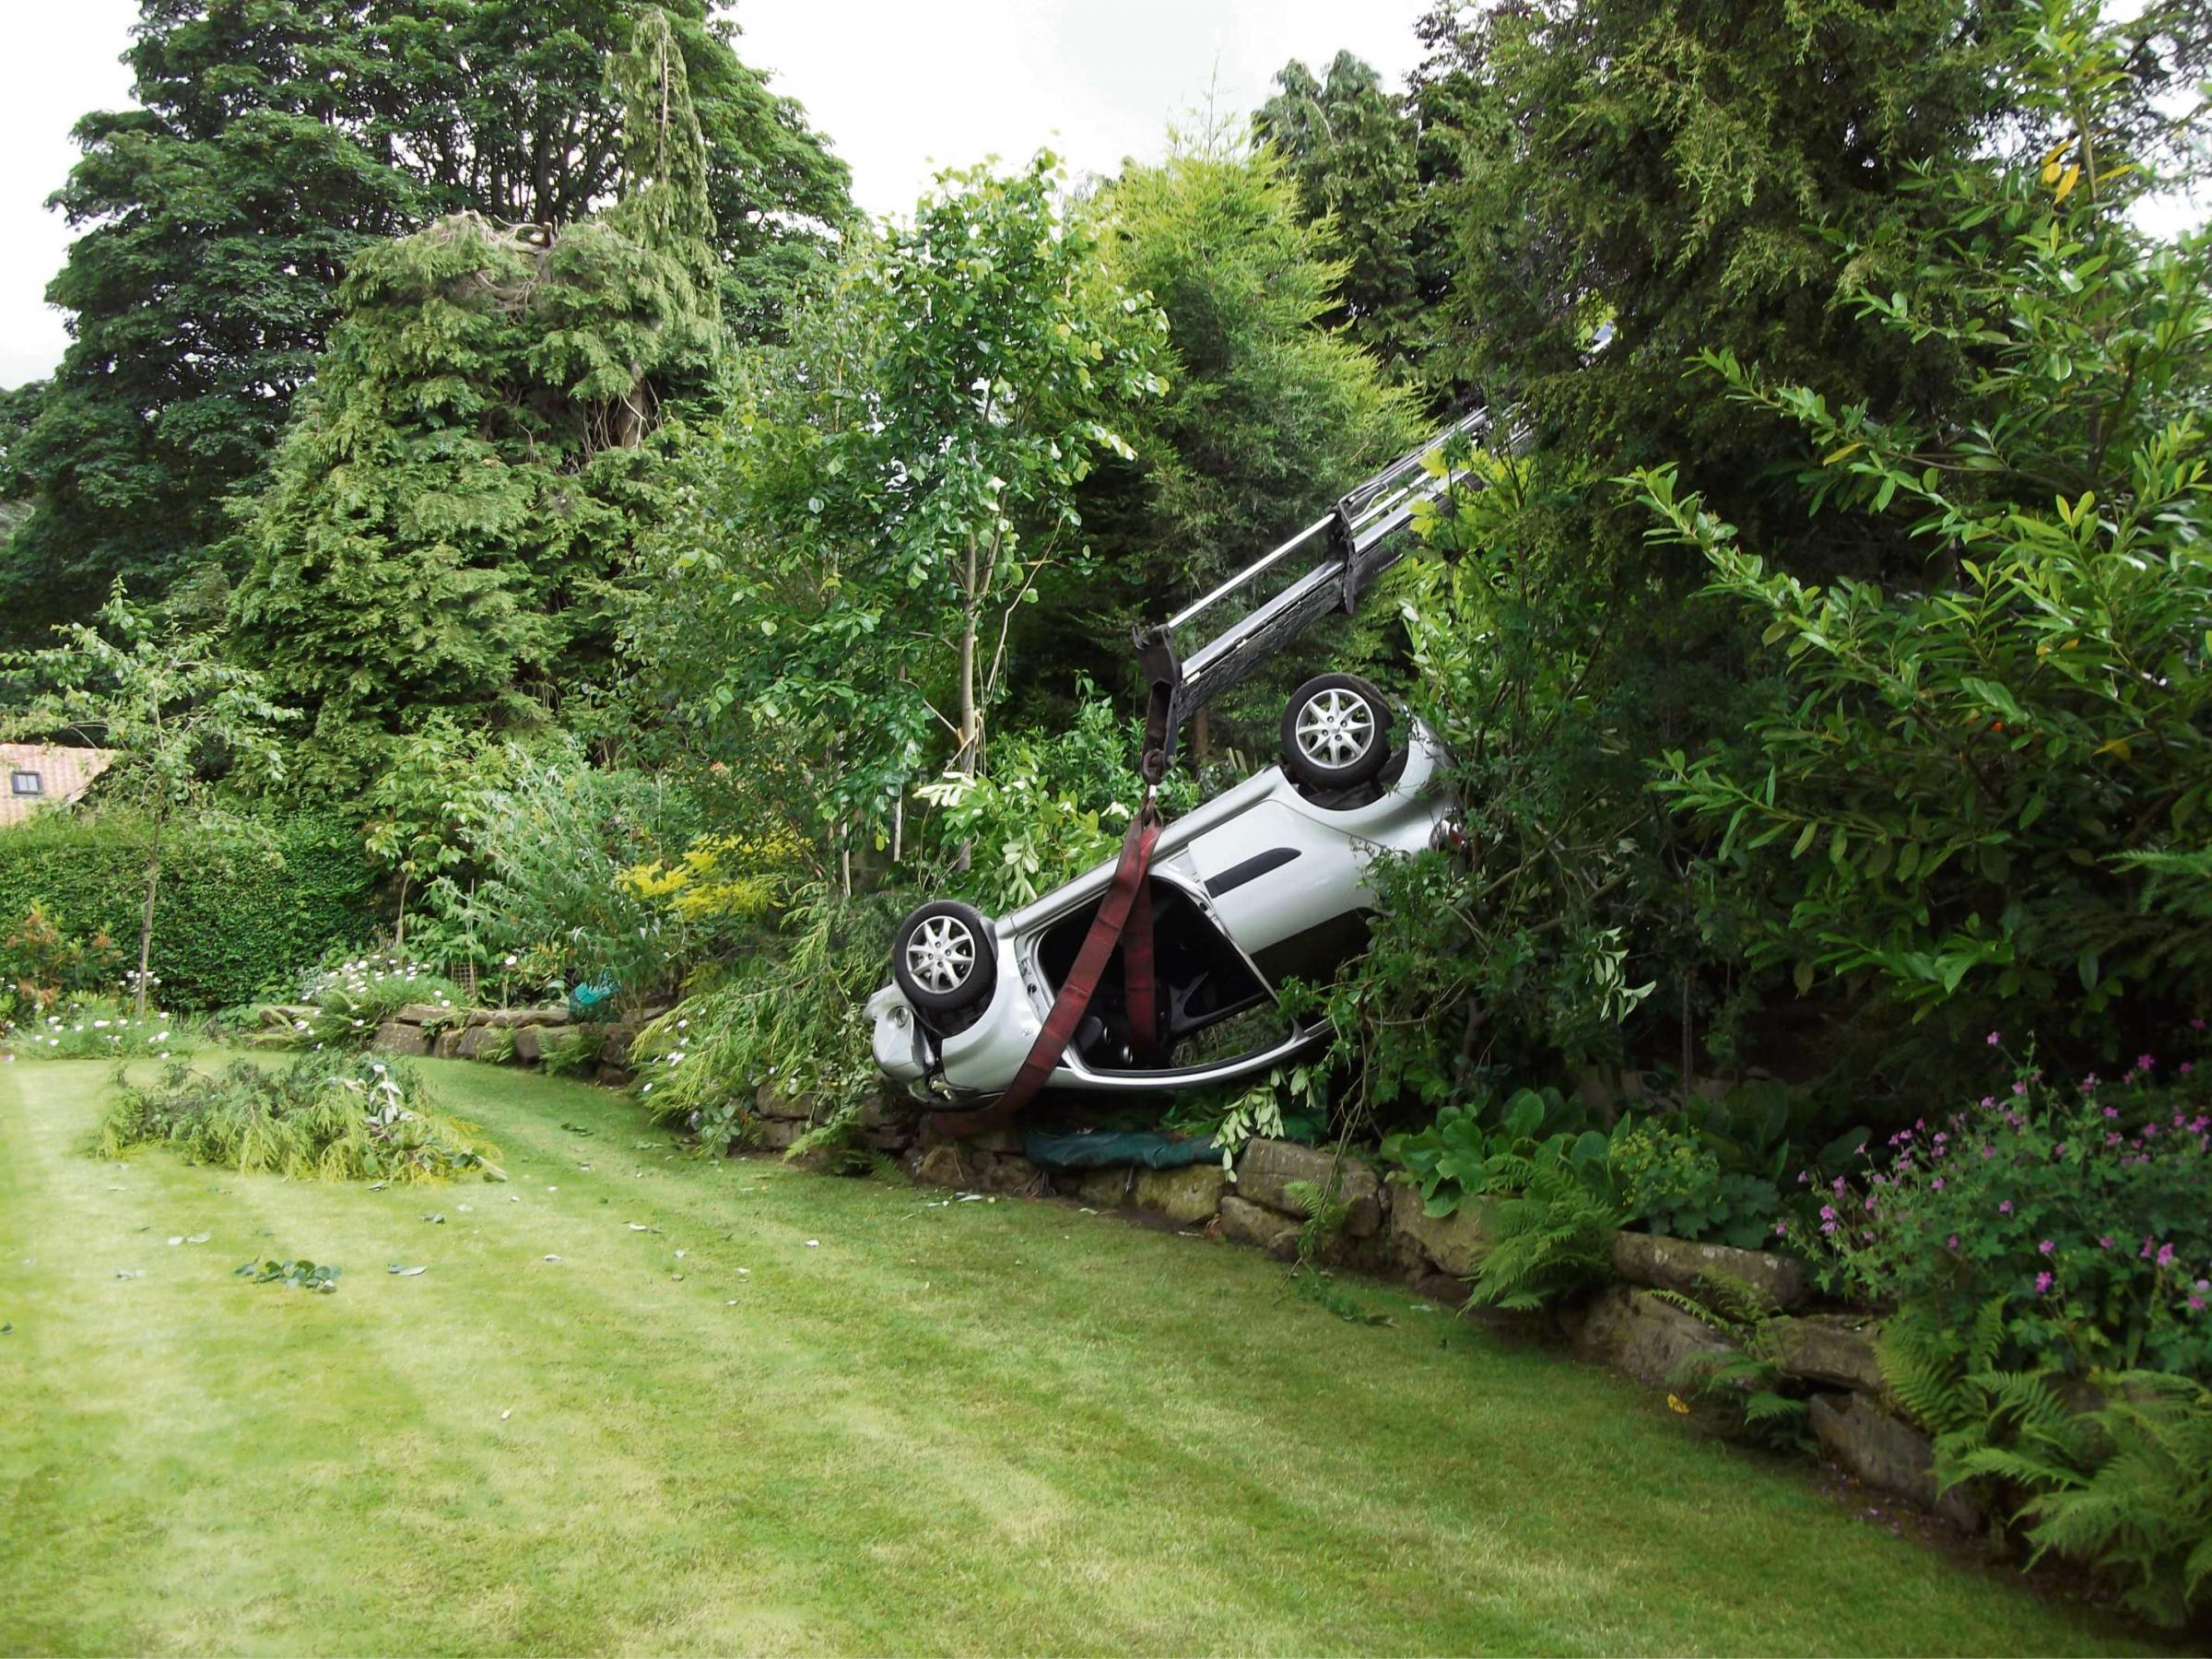 Two lucky to be alive after car ploughs into garden